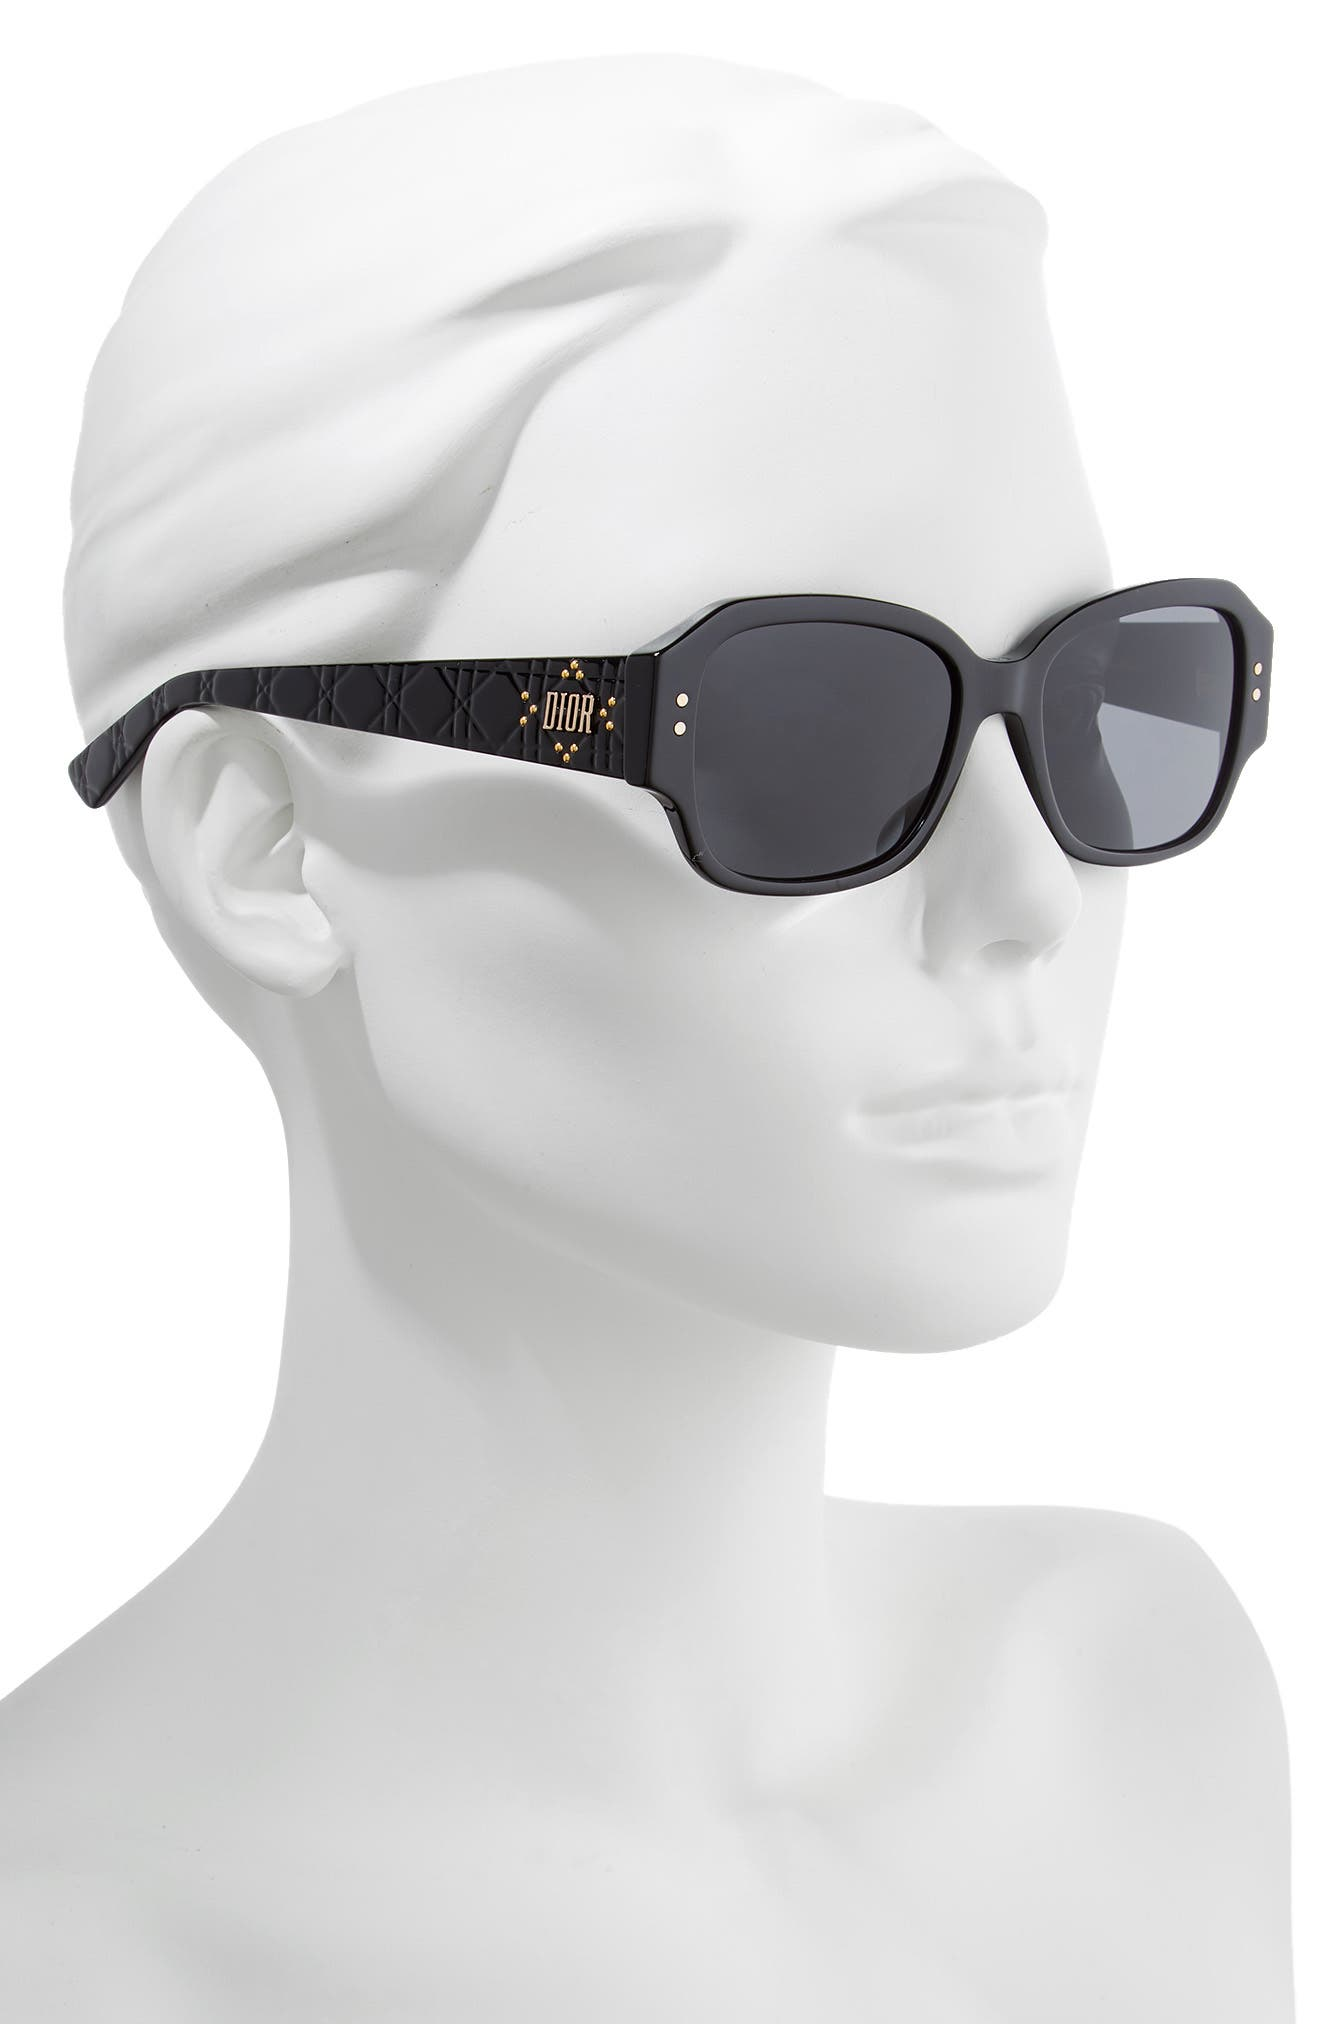 DIOR, Ladydiorstuds5 54mm Sunglasses, Alternate thumbnail 2, color, BLACK